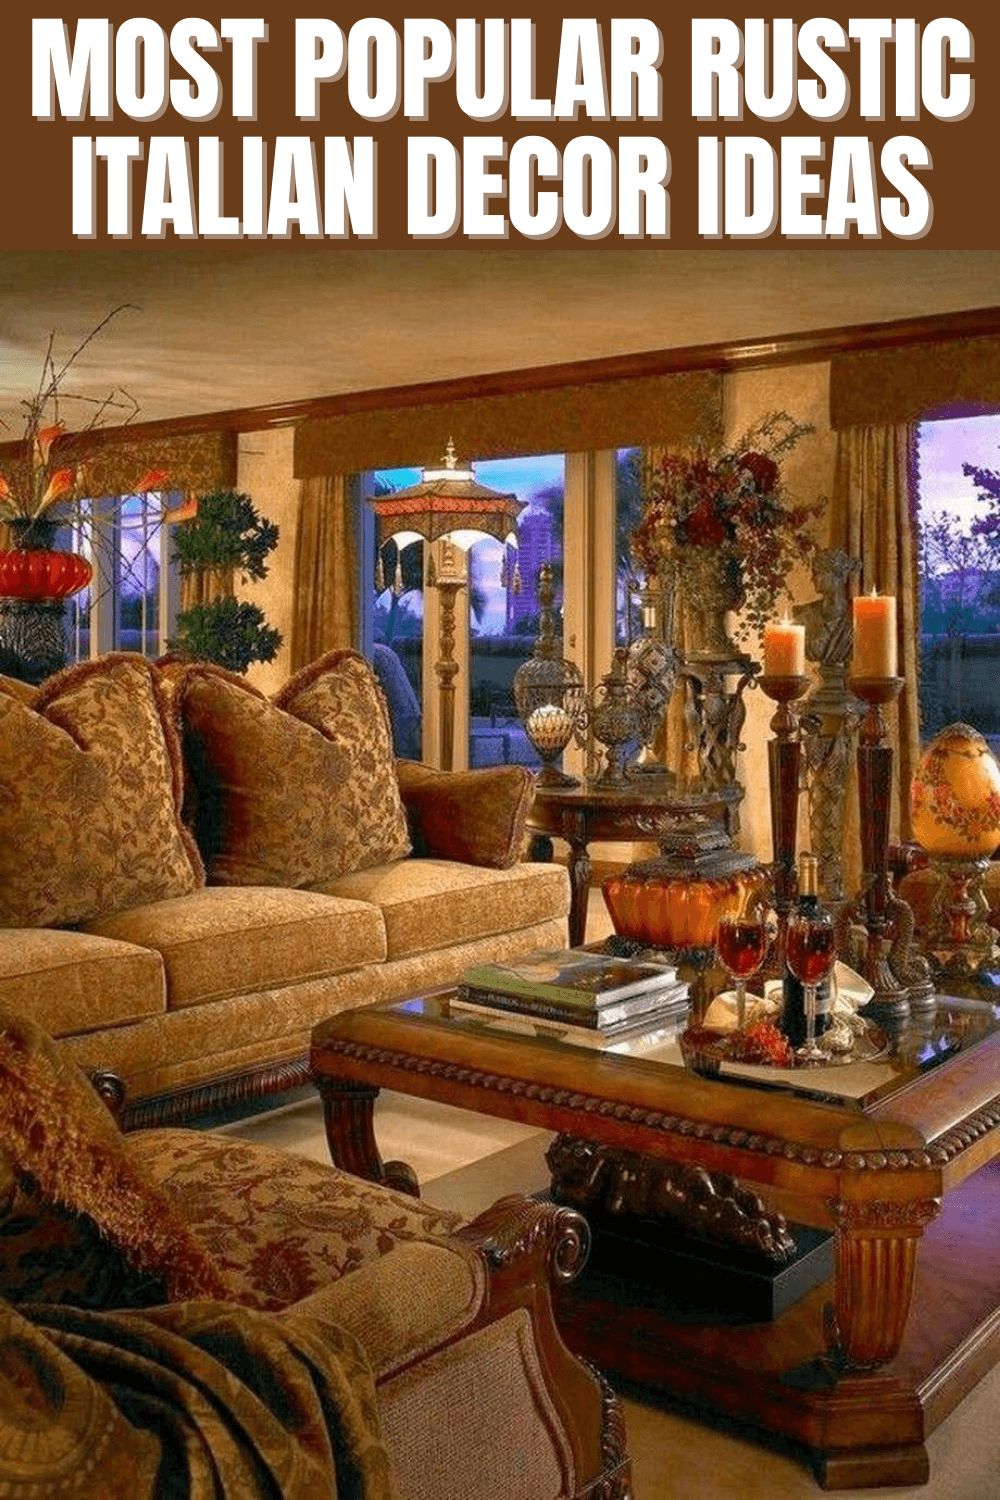 MOST POPULAR RUSTIC ITALIAN DECOR IDEAS